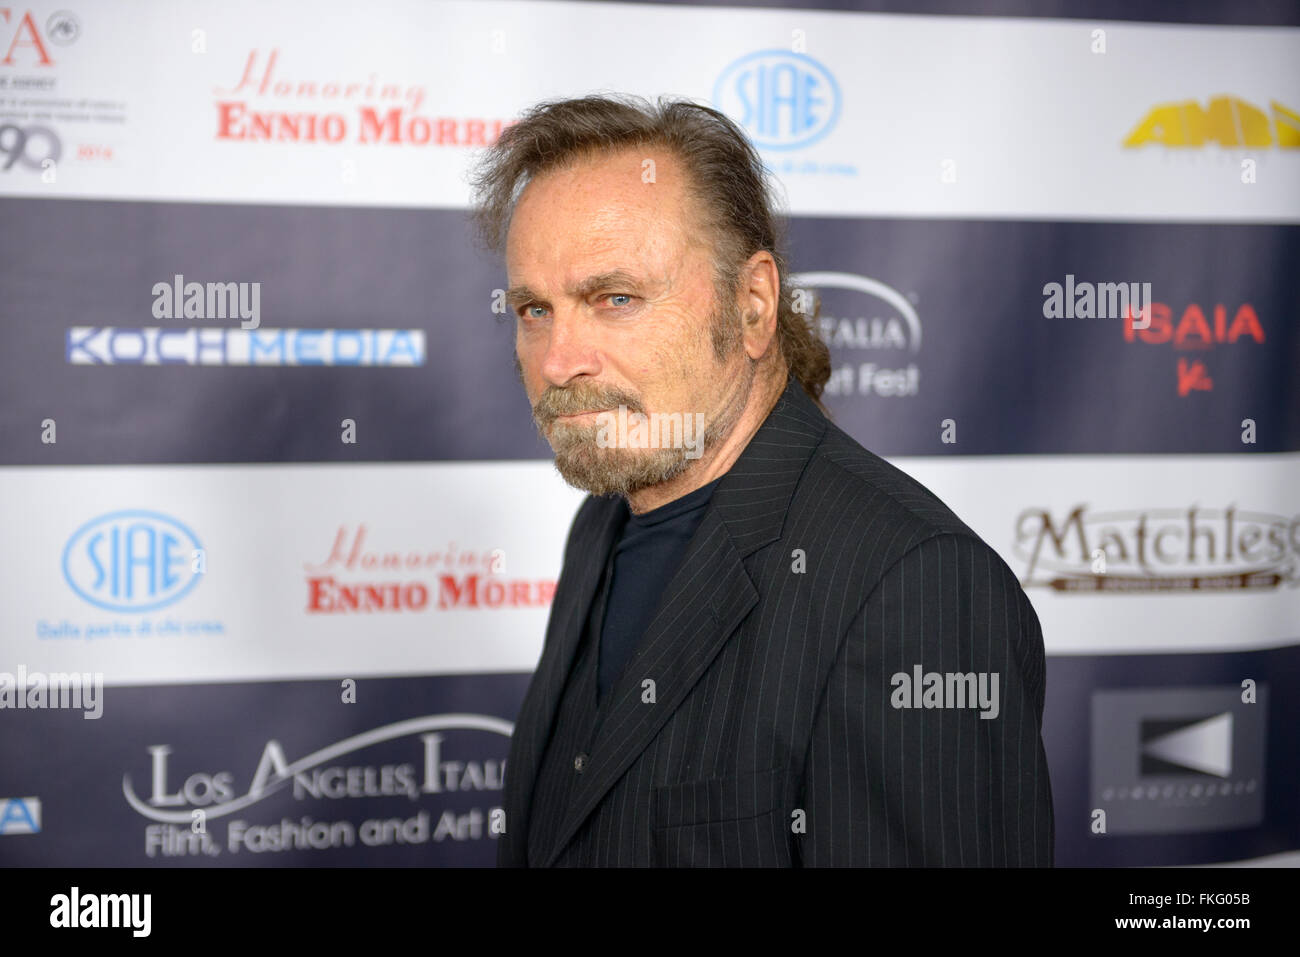 FEBRUARY 22, 2016: The actor Franco Nero at the Los Angeles Italian Film Festival. - Stock Image